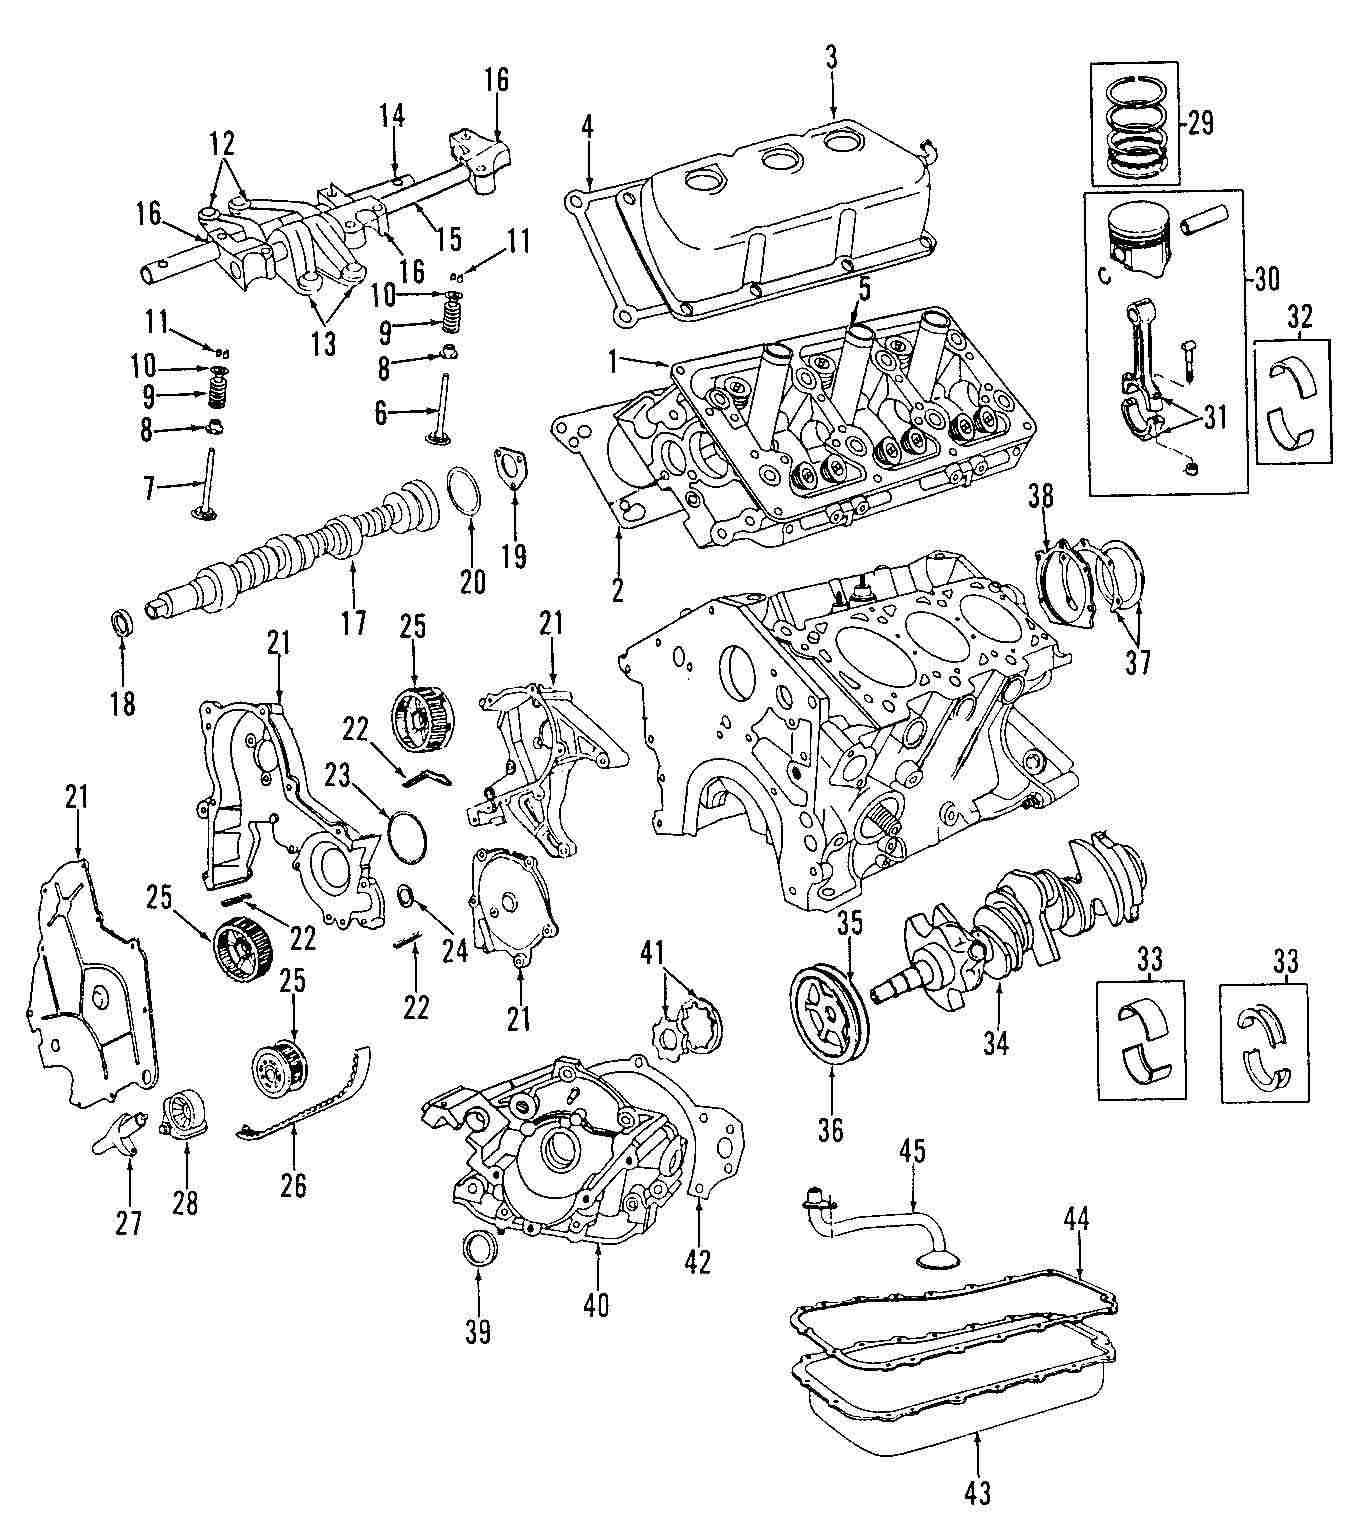 2001 CHRYSLER LHS Parts - Mopardirectparts.com